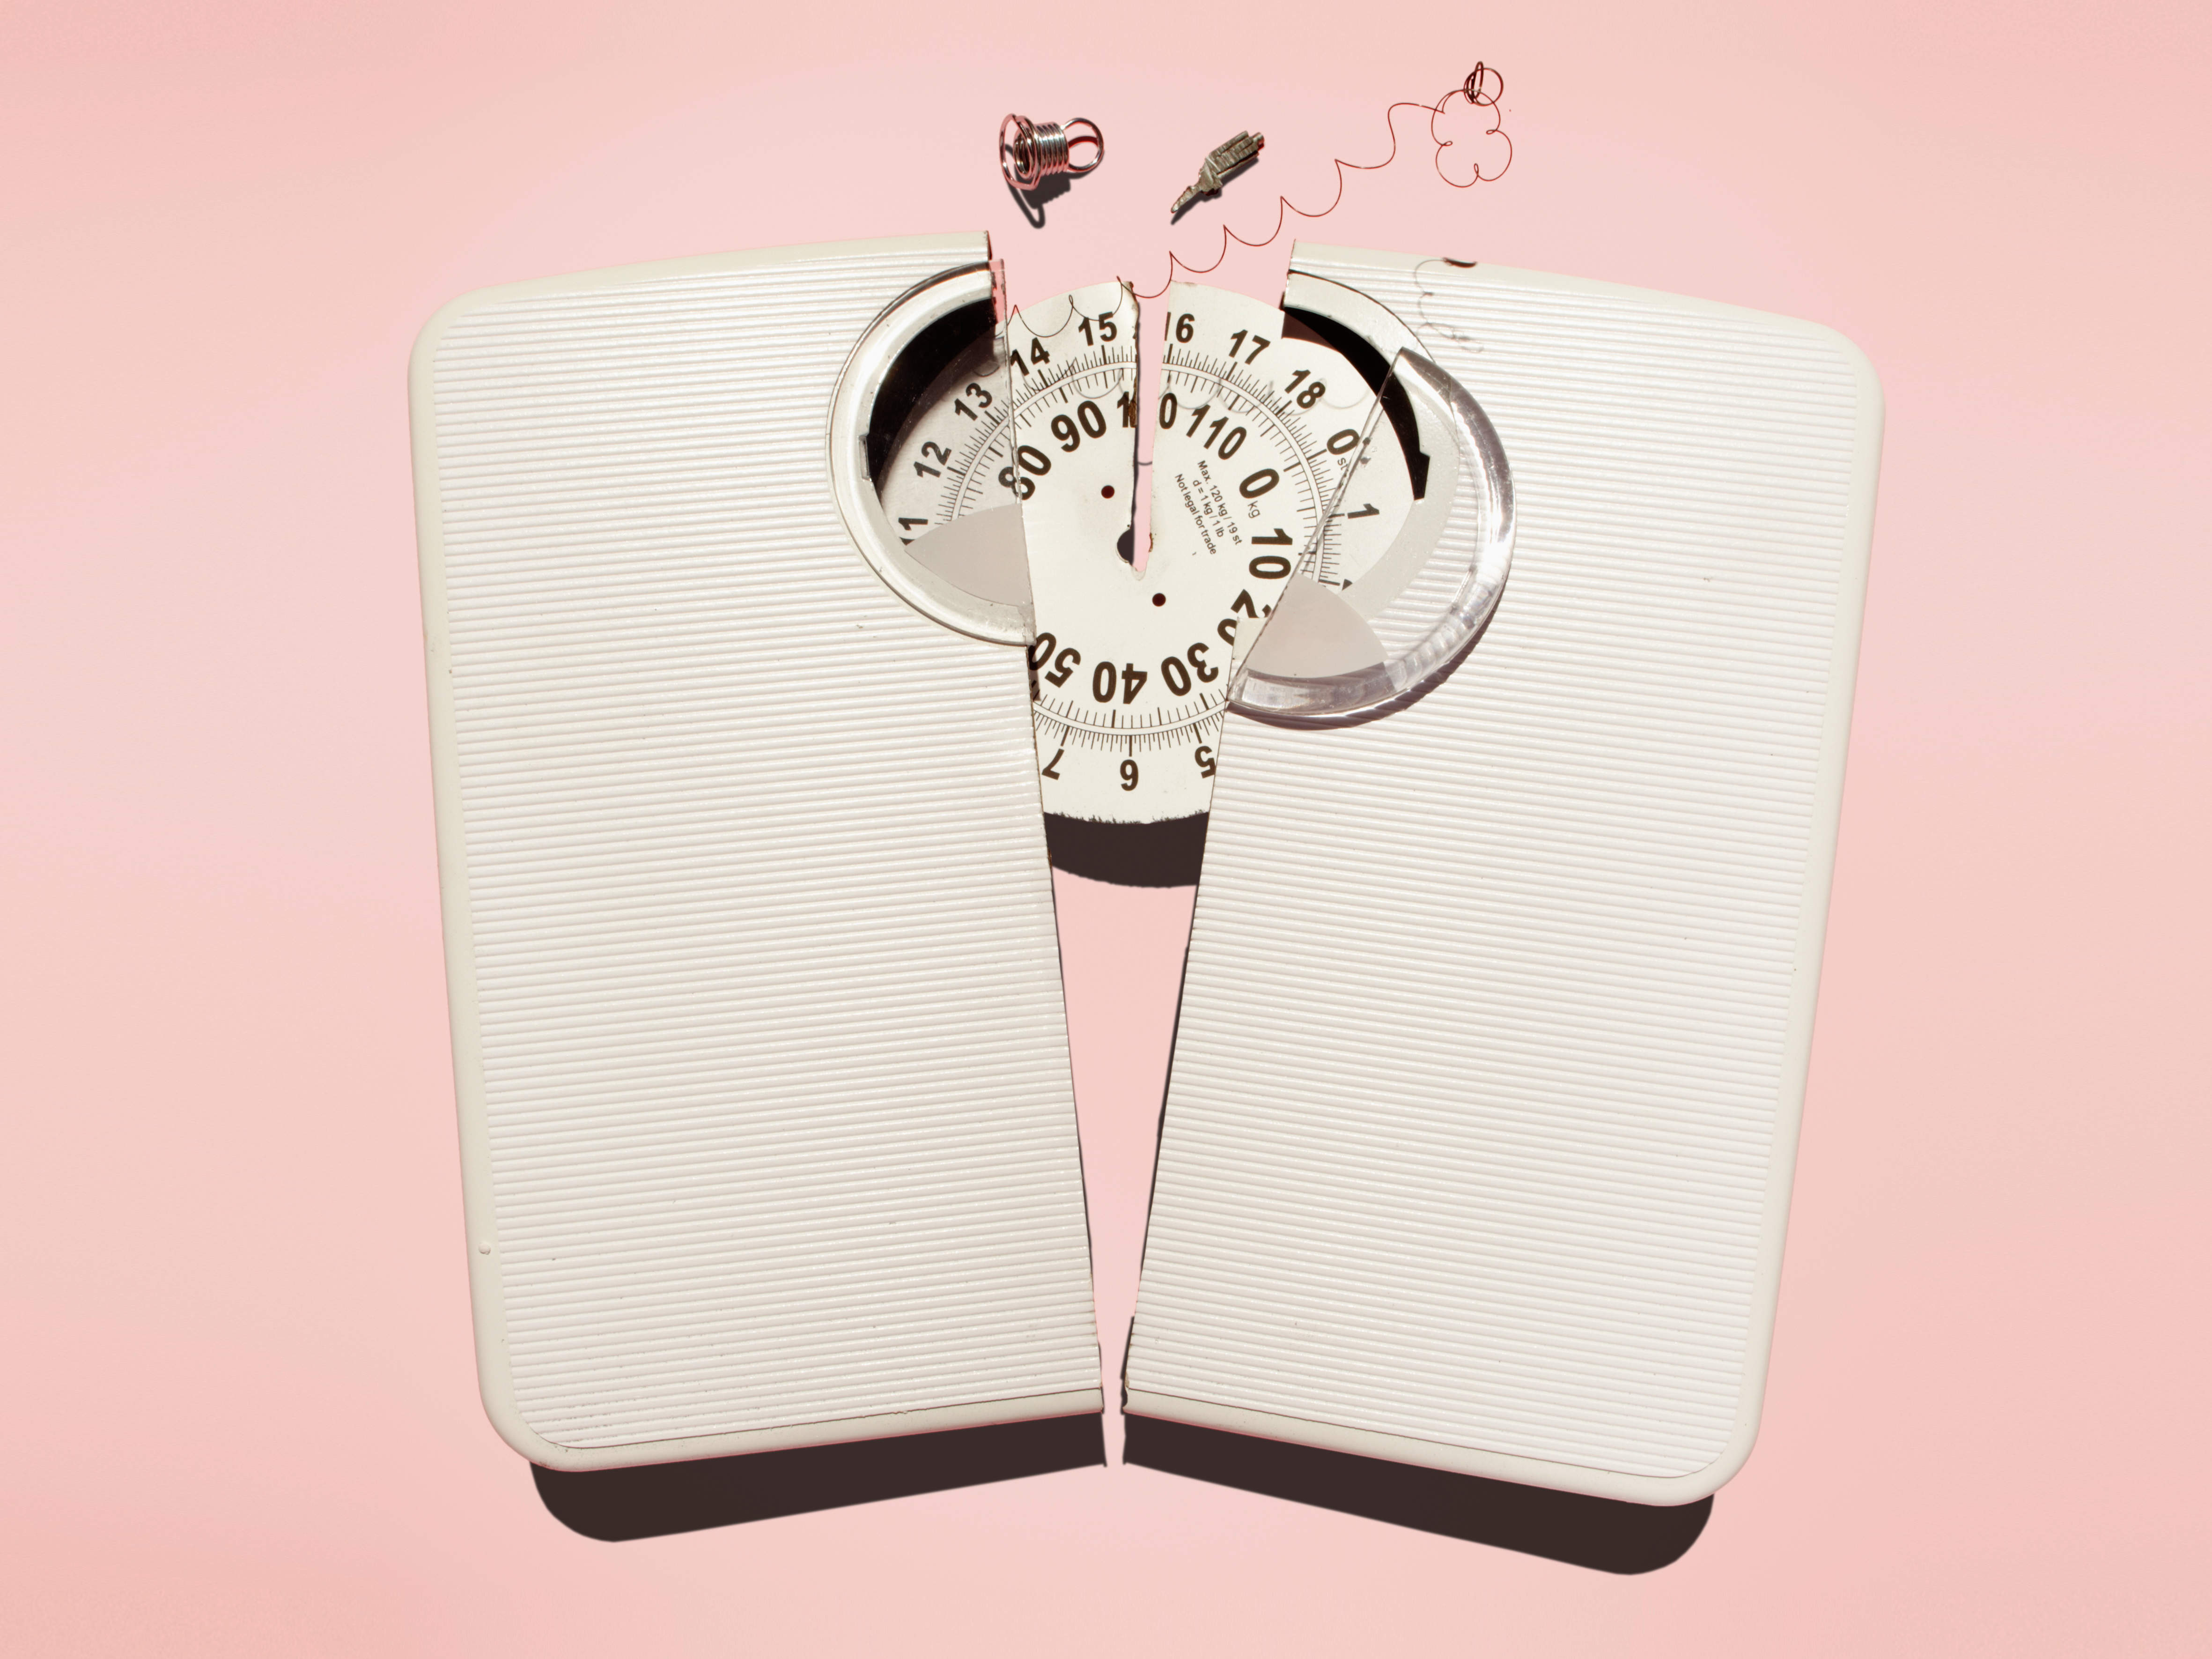 Forum on this topic: What Can Explain a Weight-Loss Plateau, what-can-explain-a-weight-loss-plateau/